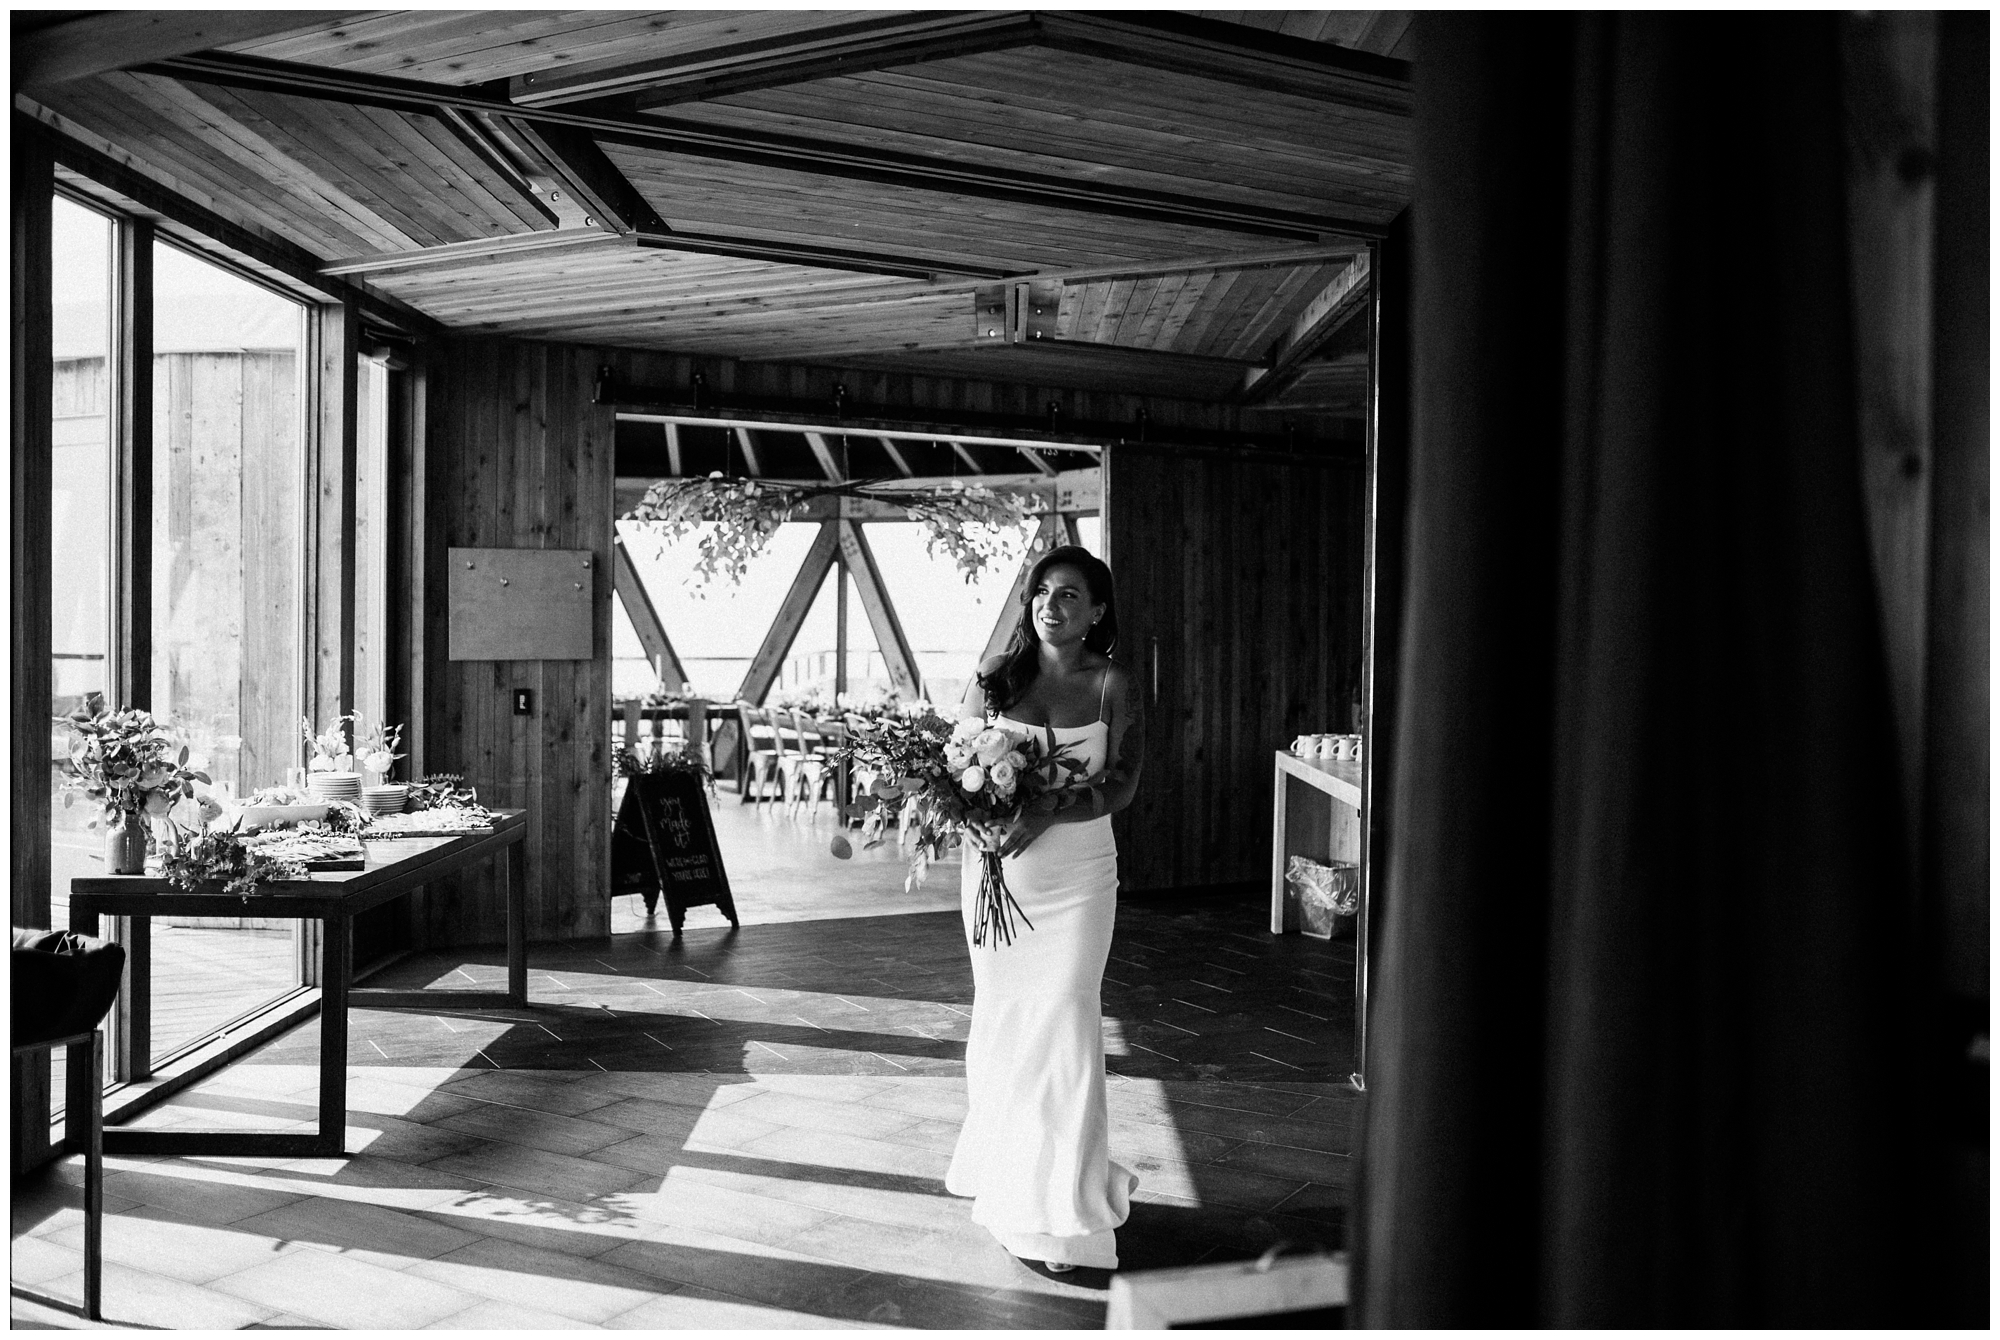 Natalie and Billy Wedding at Skylodge Powder Mountain with jenFAIRCHILD Photography in Utah_0002.jpg